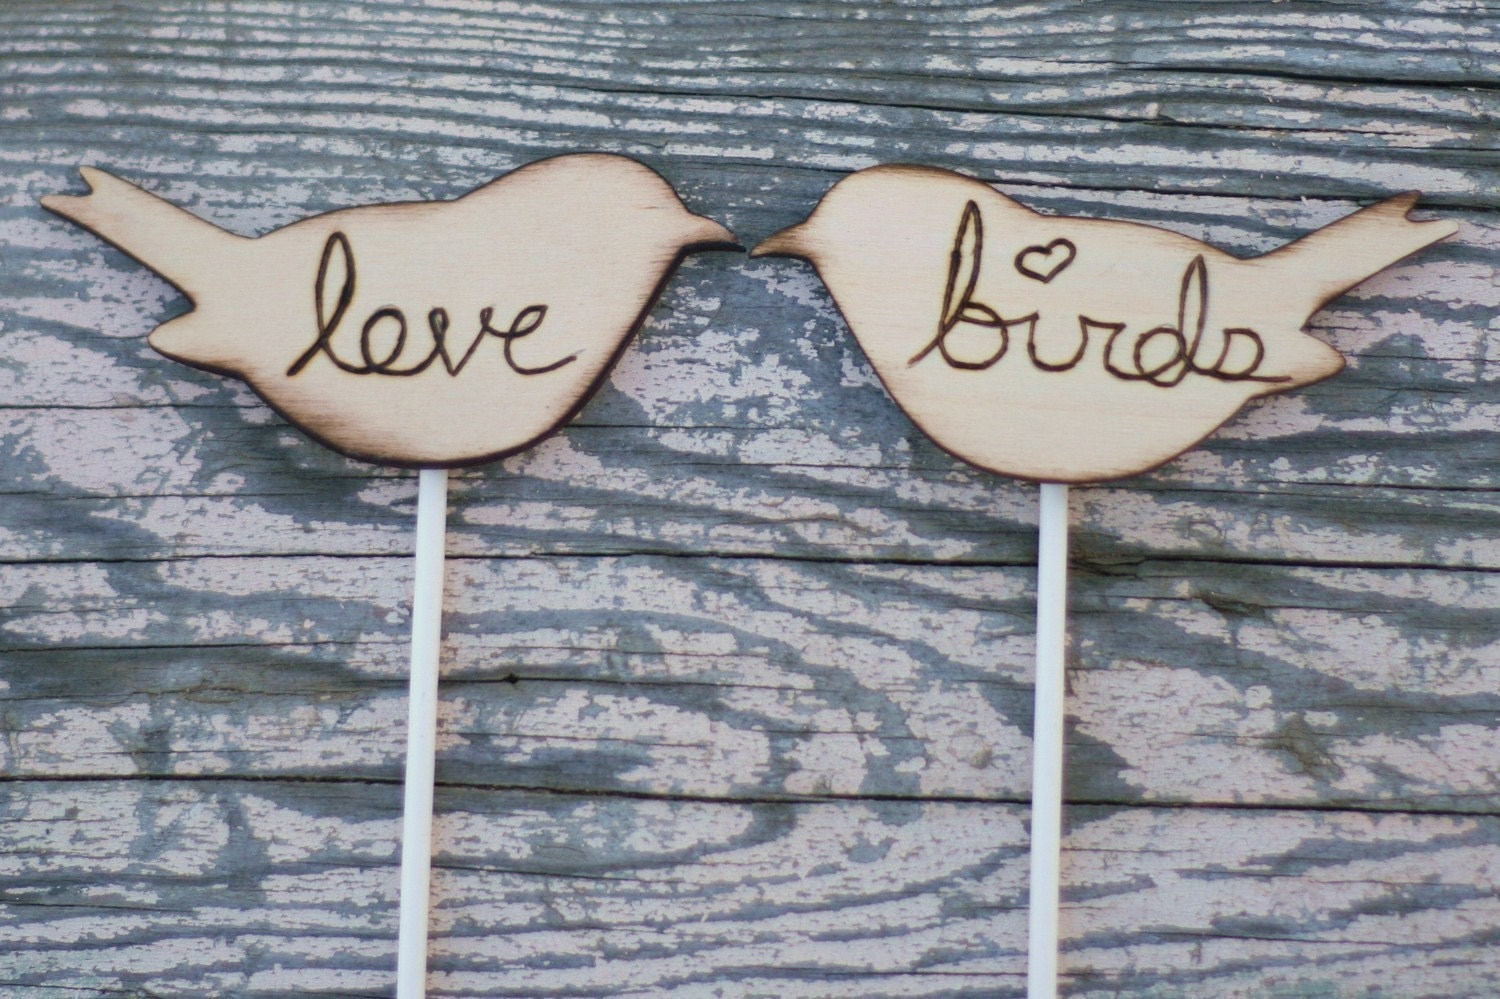 Love Birds Cupcake Cake Toppers Rustic Woodland Fall Winter Autumn Wedding Country Lake Cottage CHIC